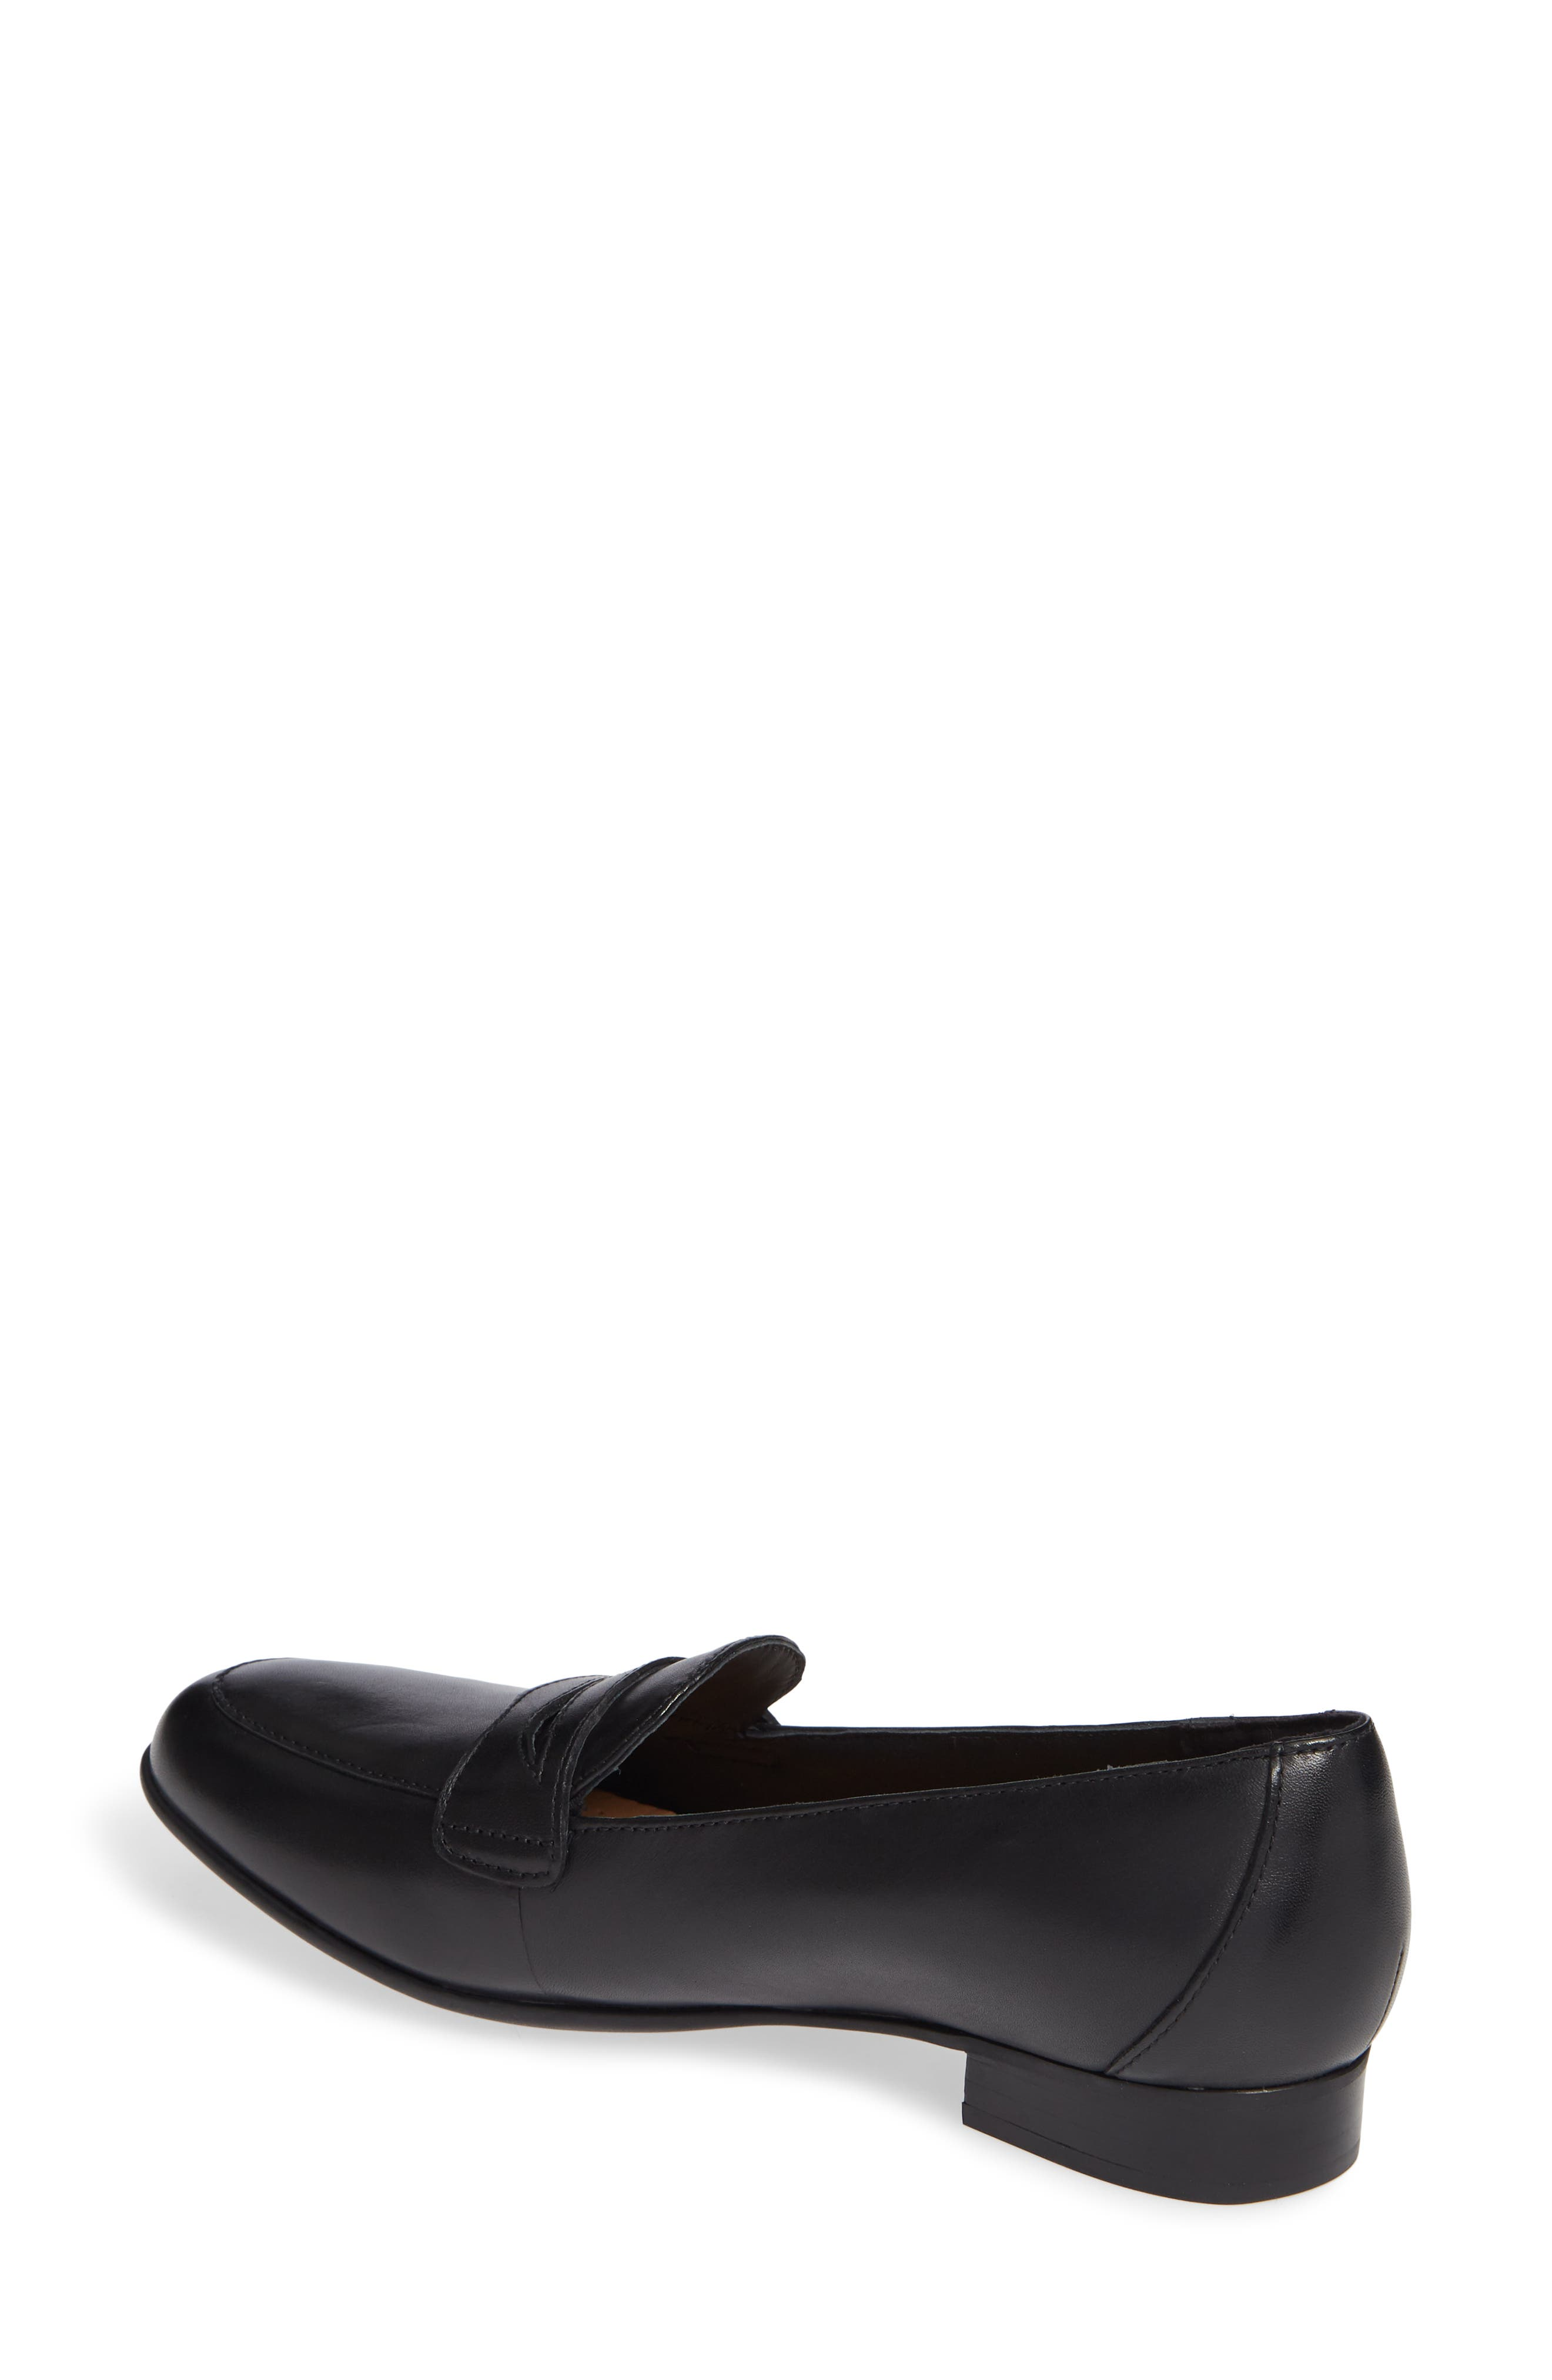 Un Blush Go Penny Loafer,                             Alternate thumbnail 2, color,                             BLACK LEATHER